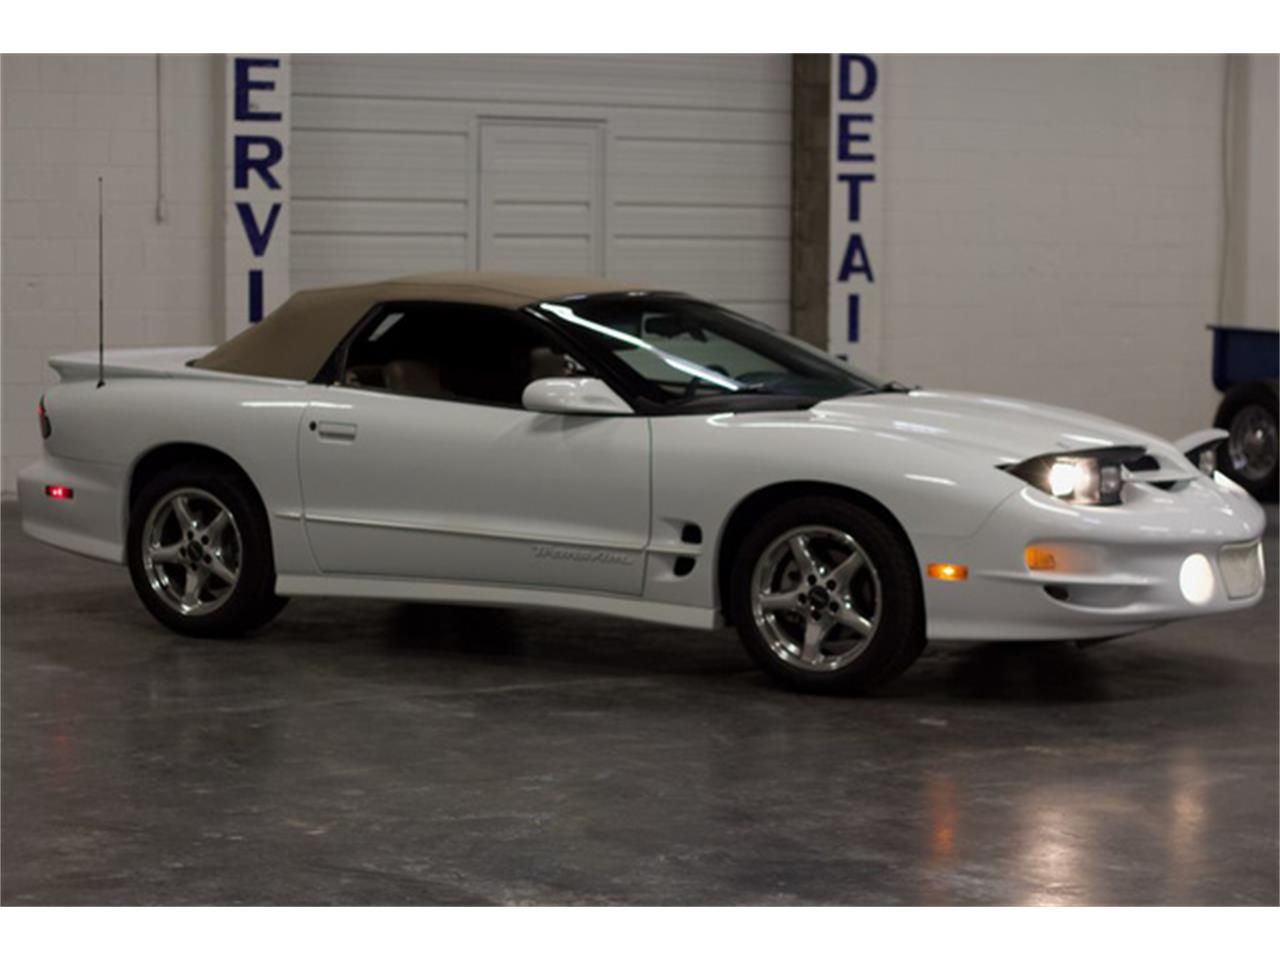 1999 Pontiac Firebird (CC-1386984) for sale in Online, Mississippi